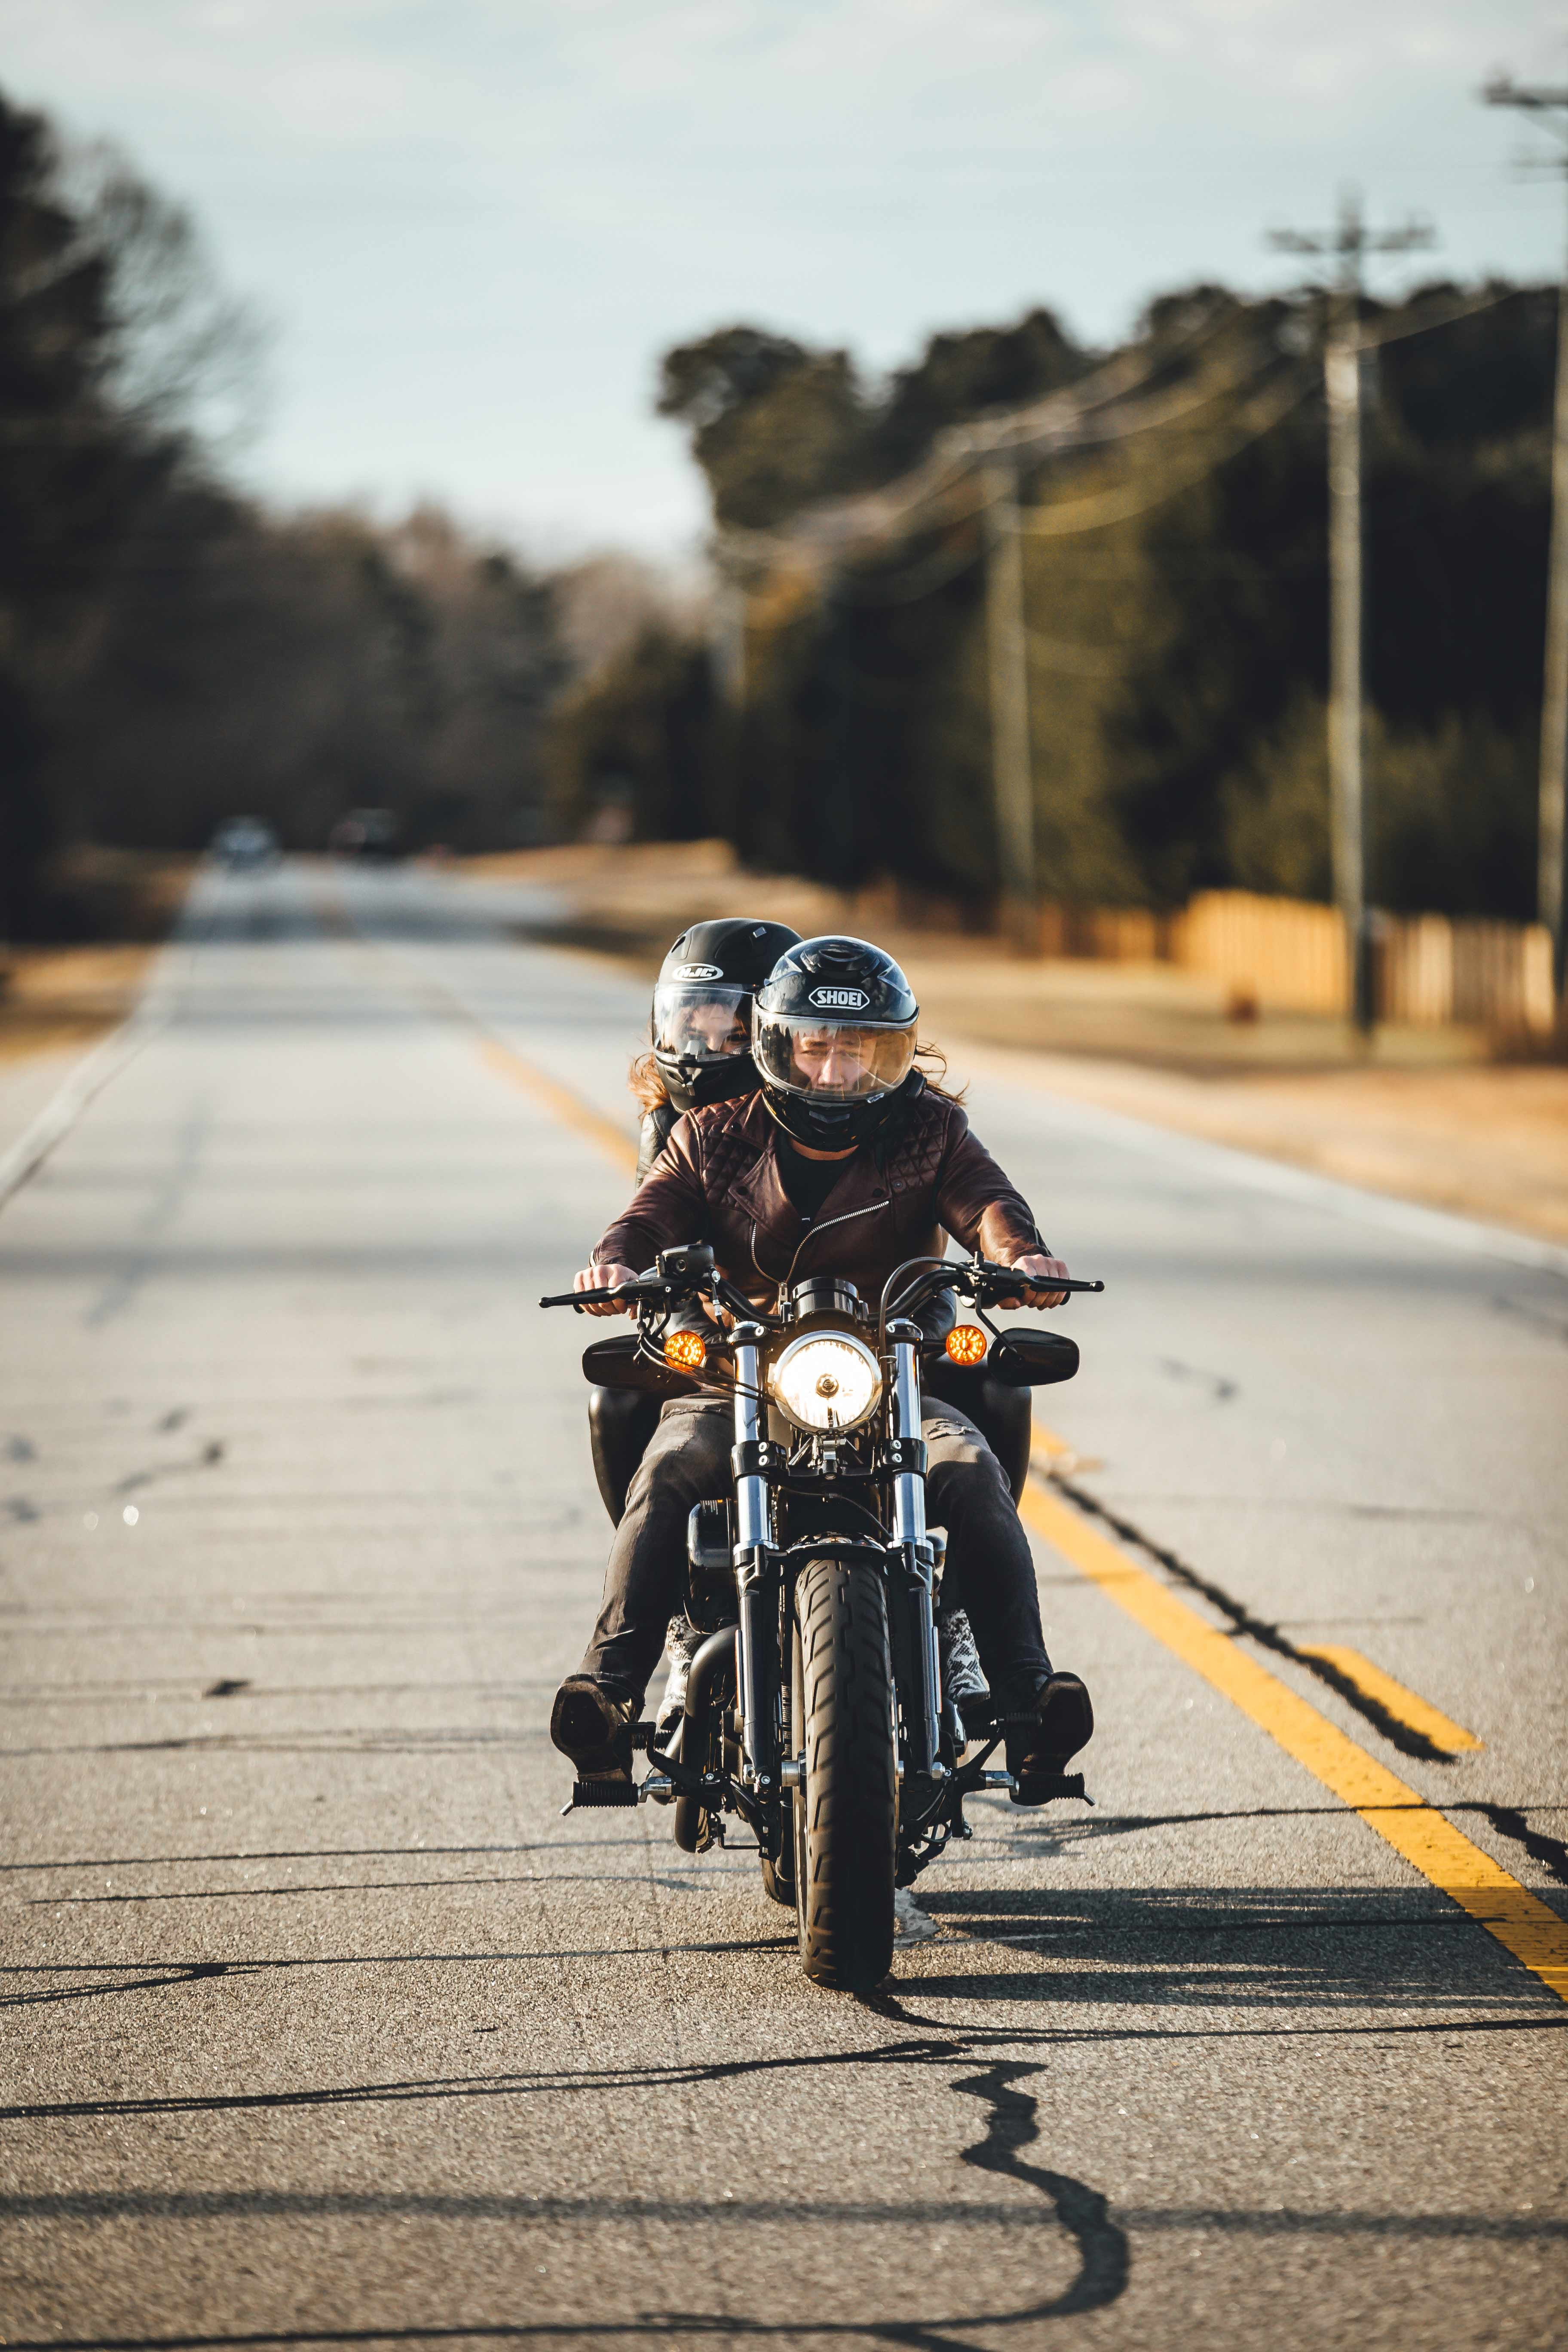 two person riding black touring motorcycle on asphalt road at daytime